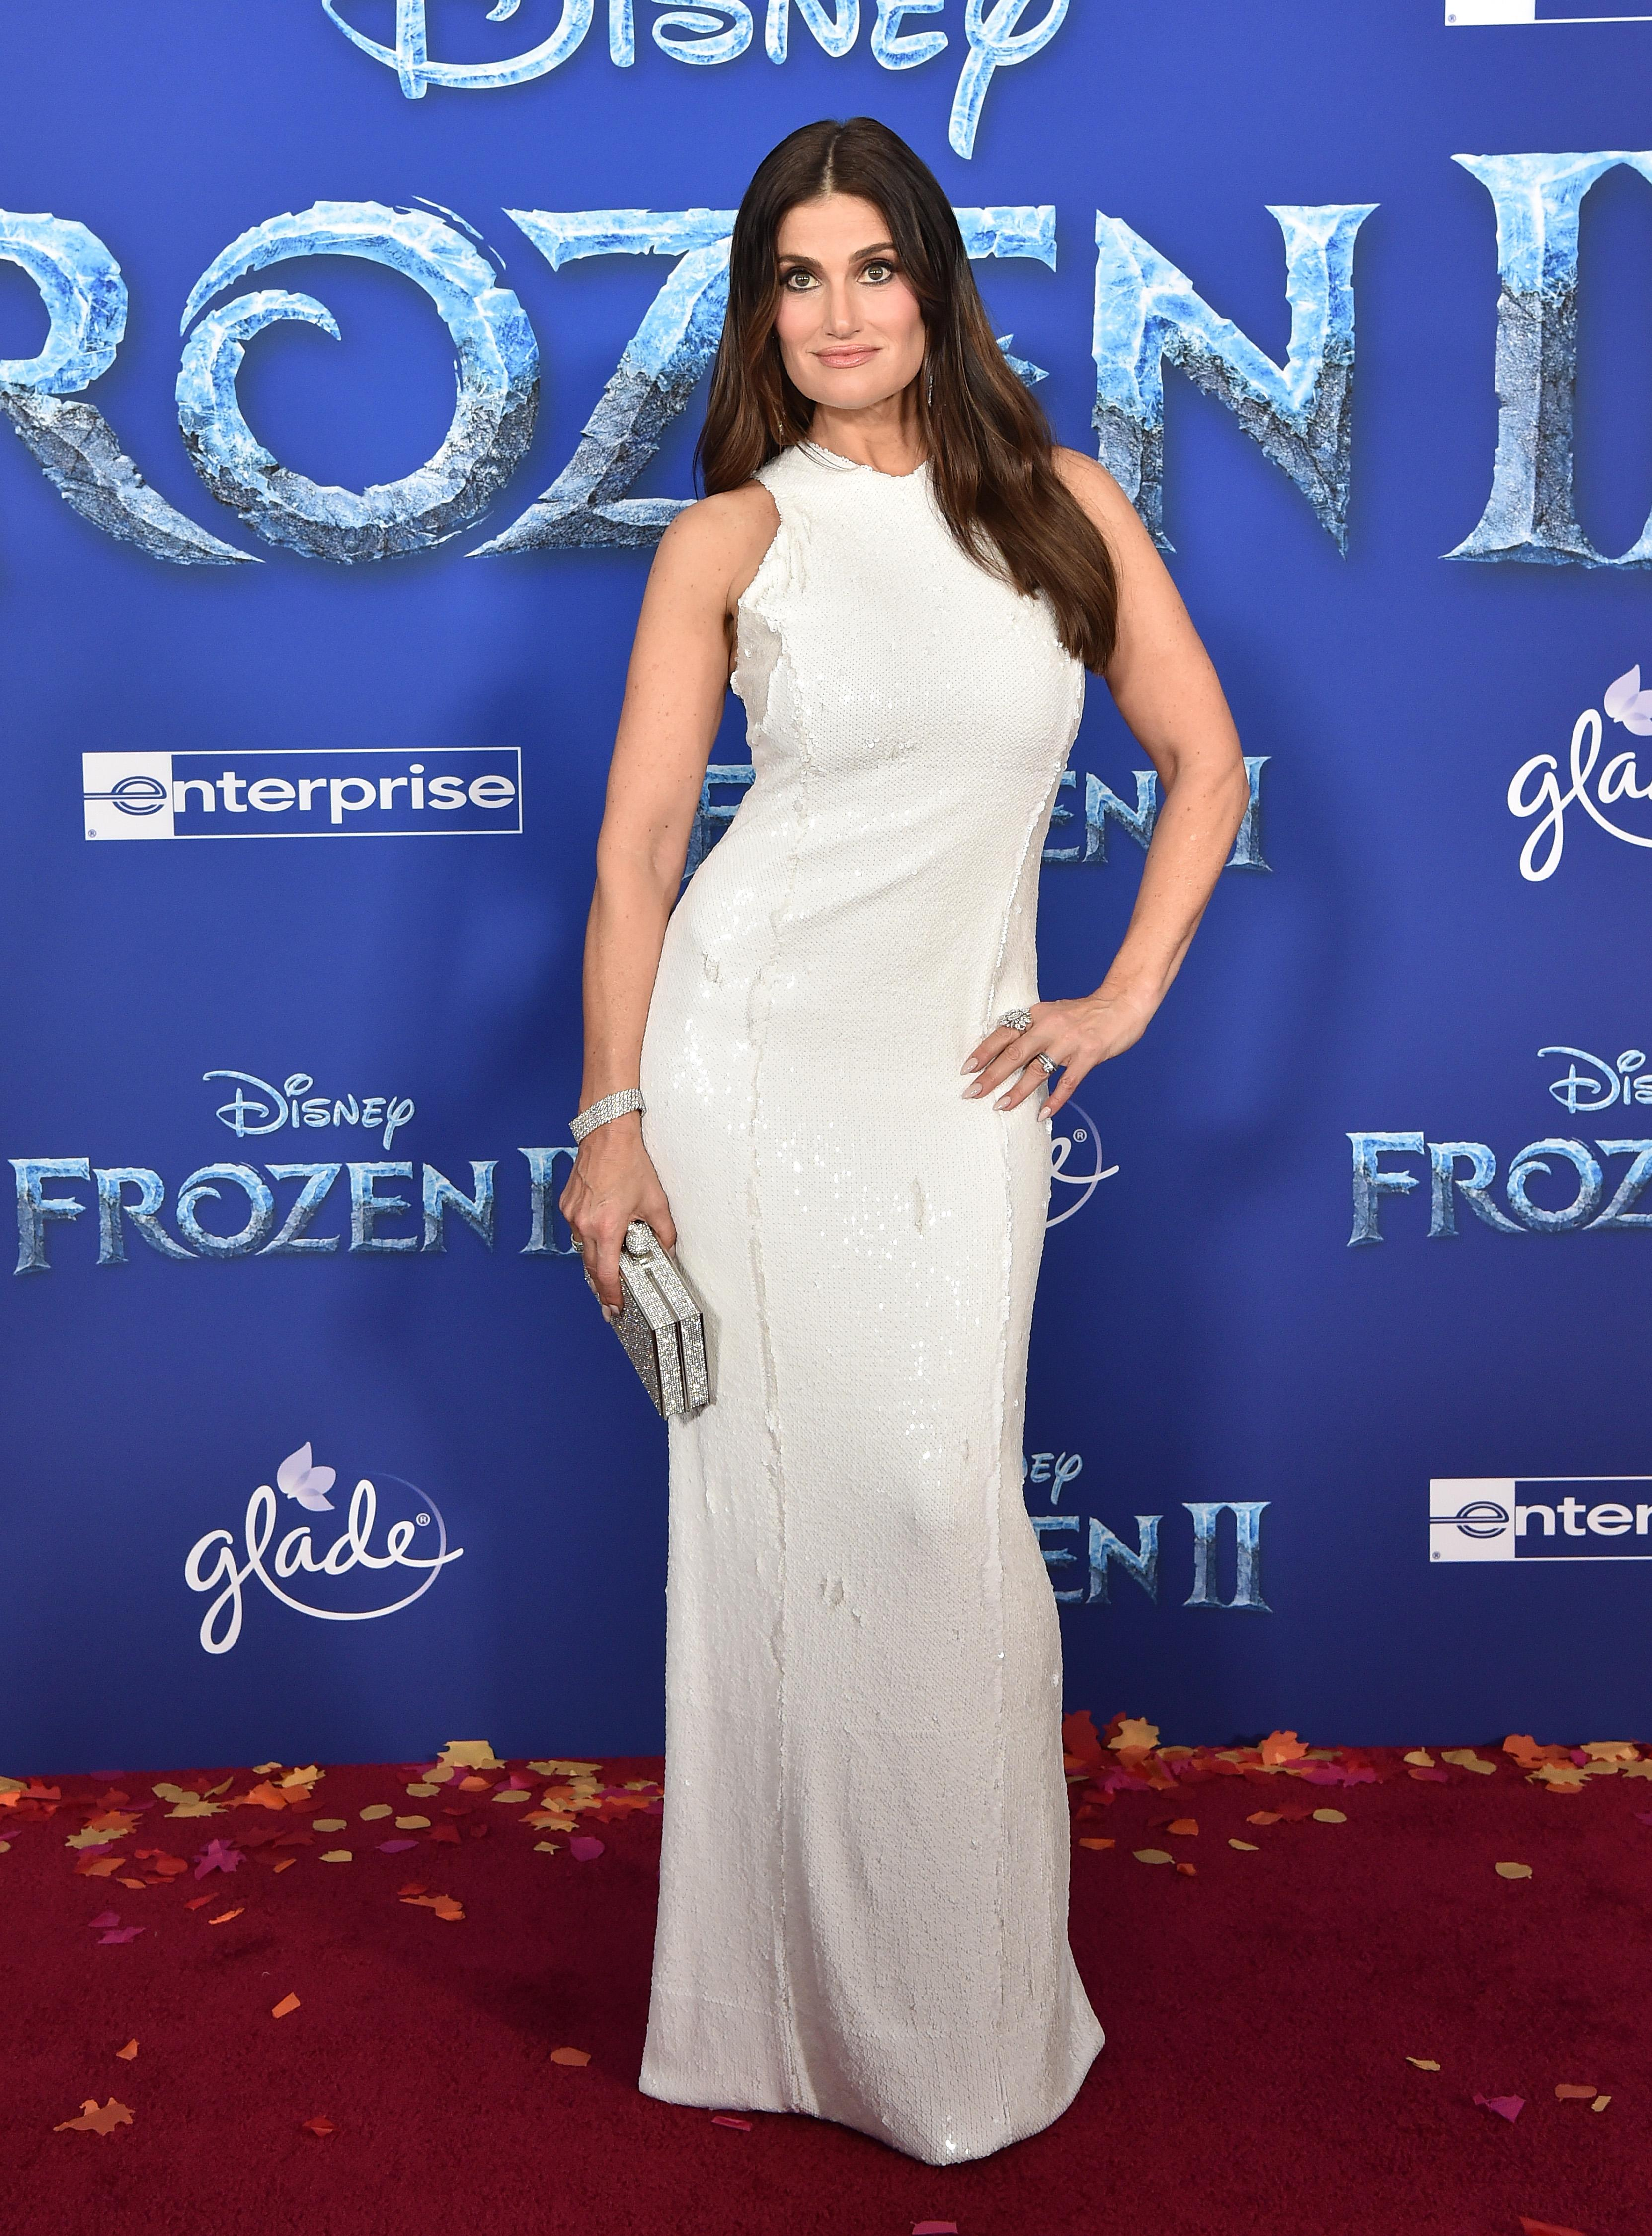 Idina Menzel attends the Premiere of 'Frozen 2'. [Photo: Getty]